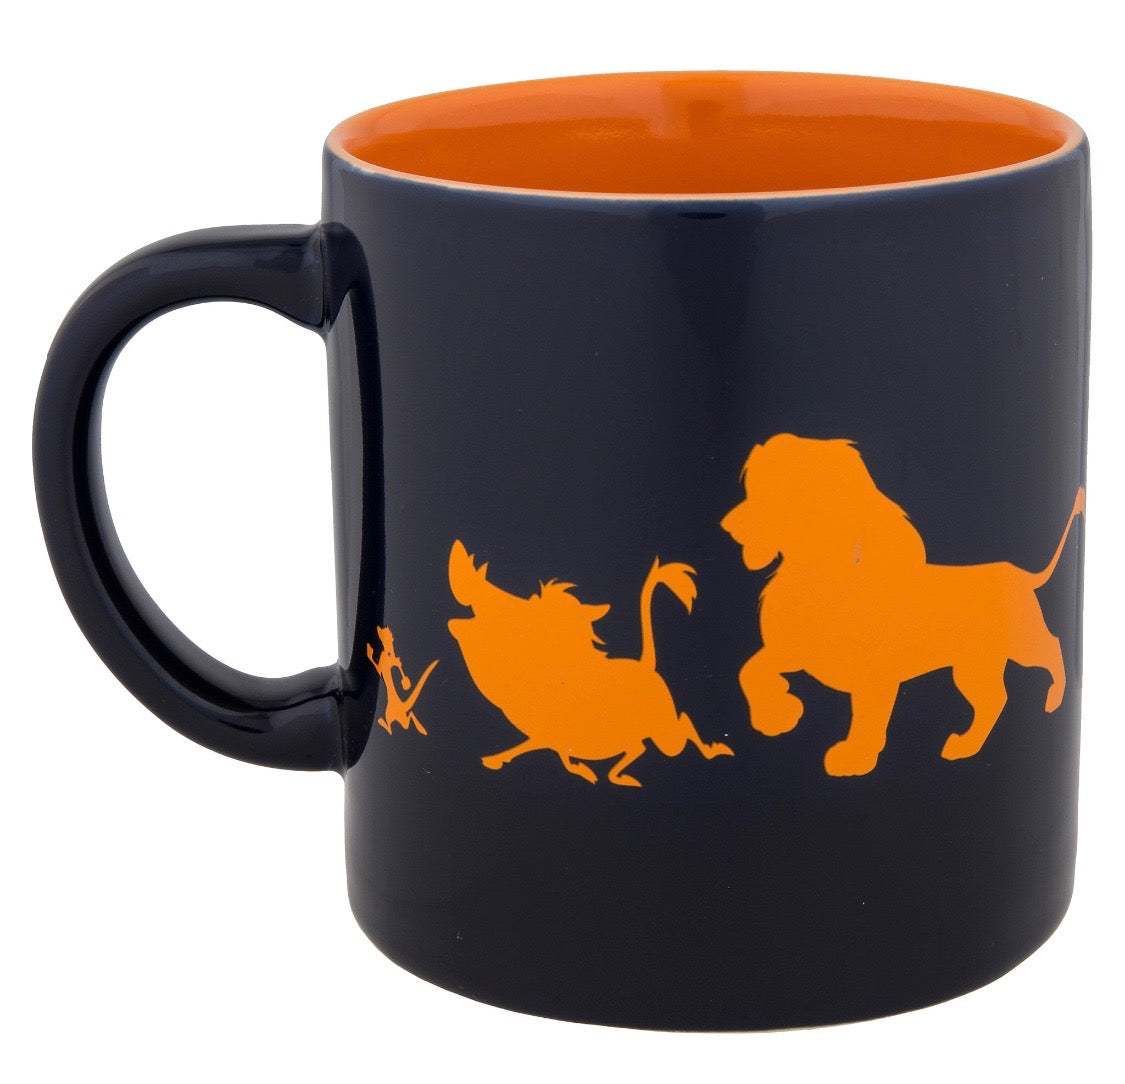 Mug New Hakuna Timon King Lion Simba Matata Disney Pumba Animal Kingdom v8wmn0N